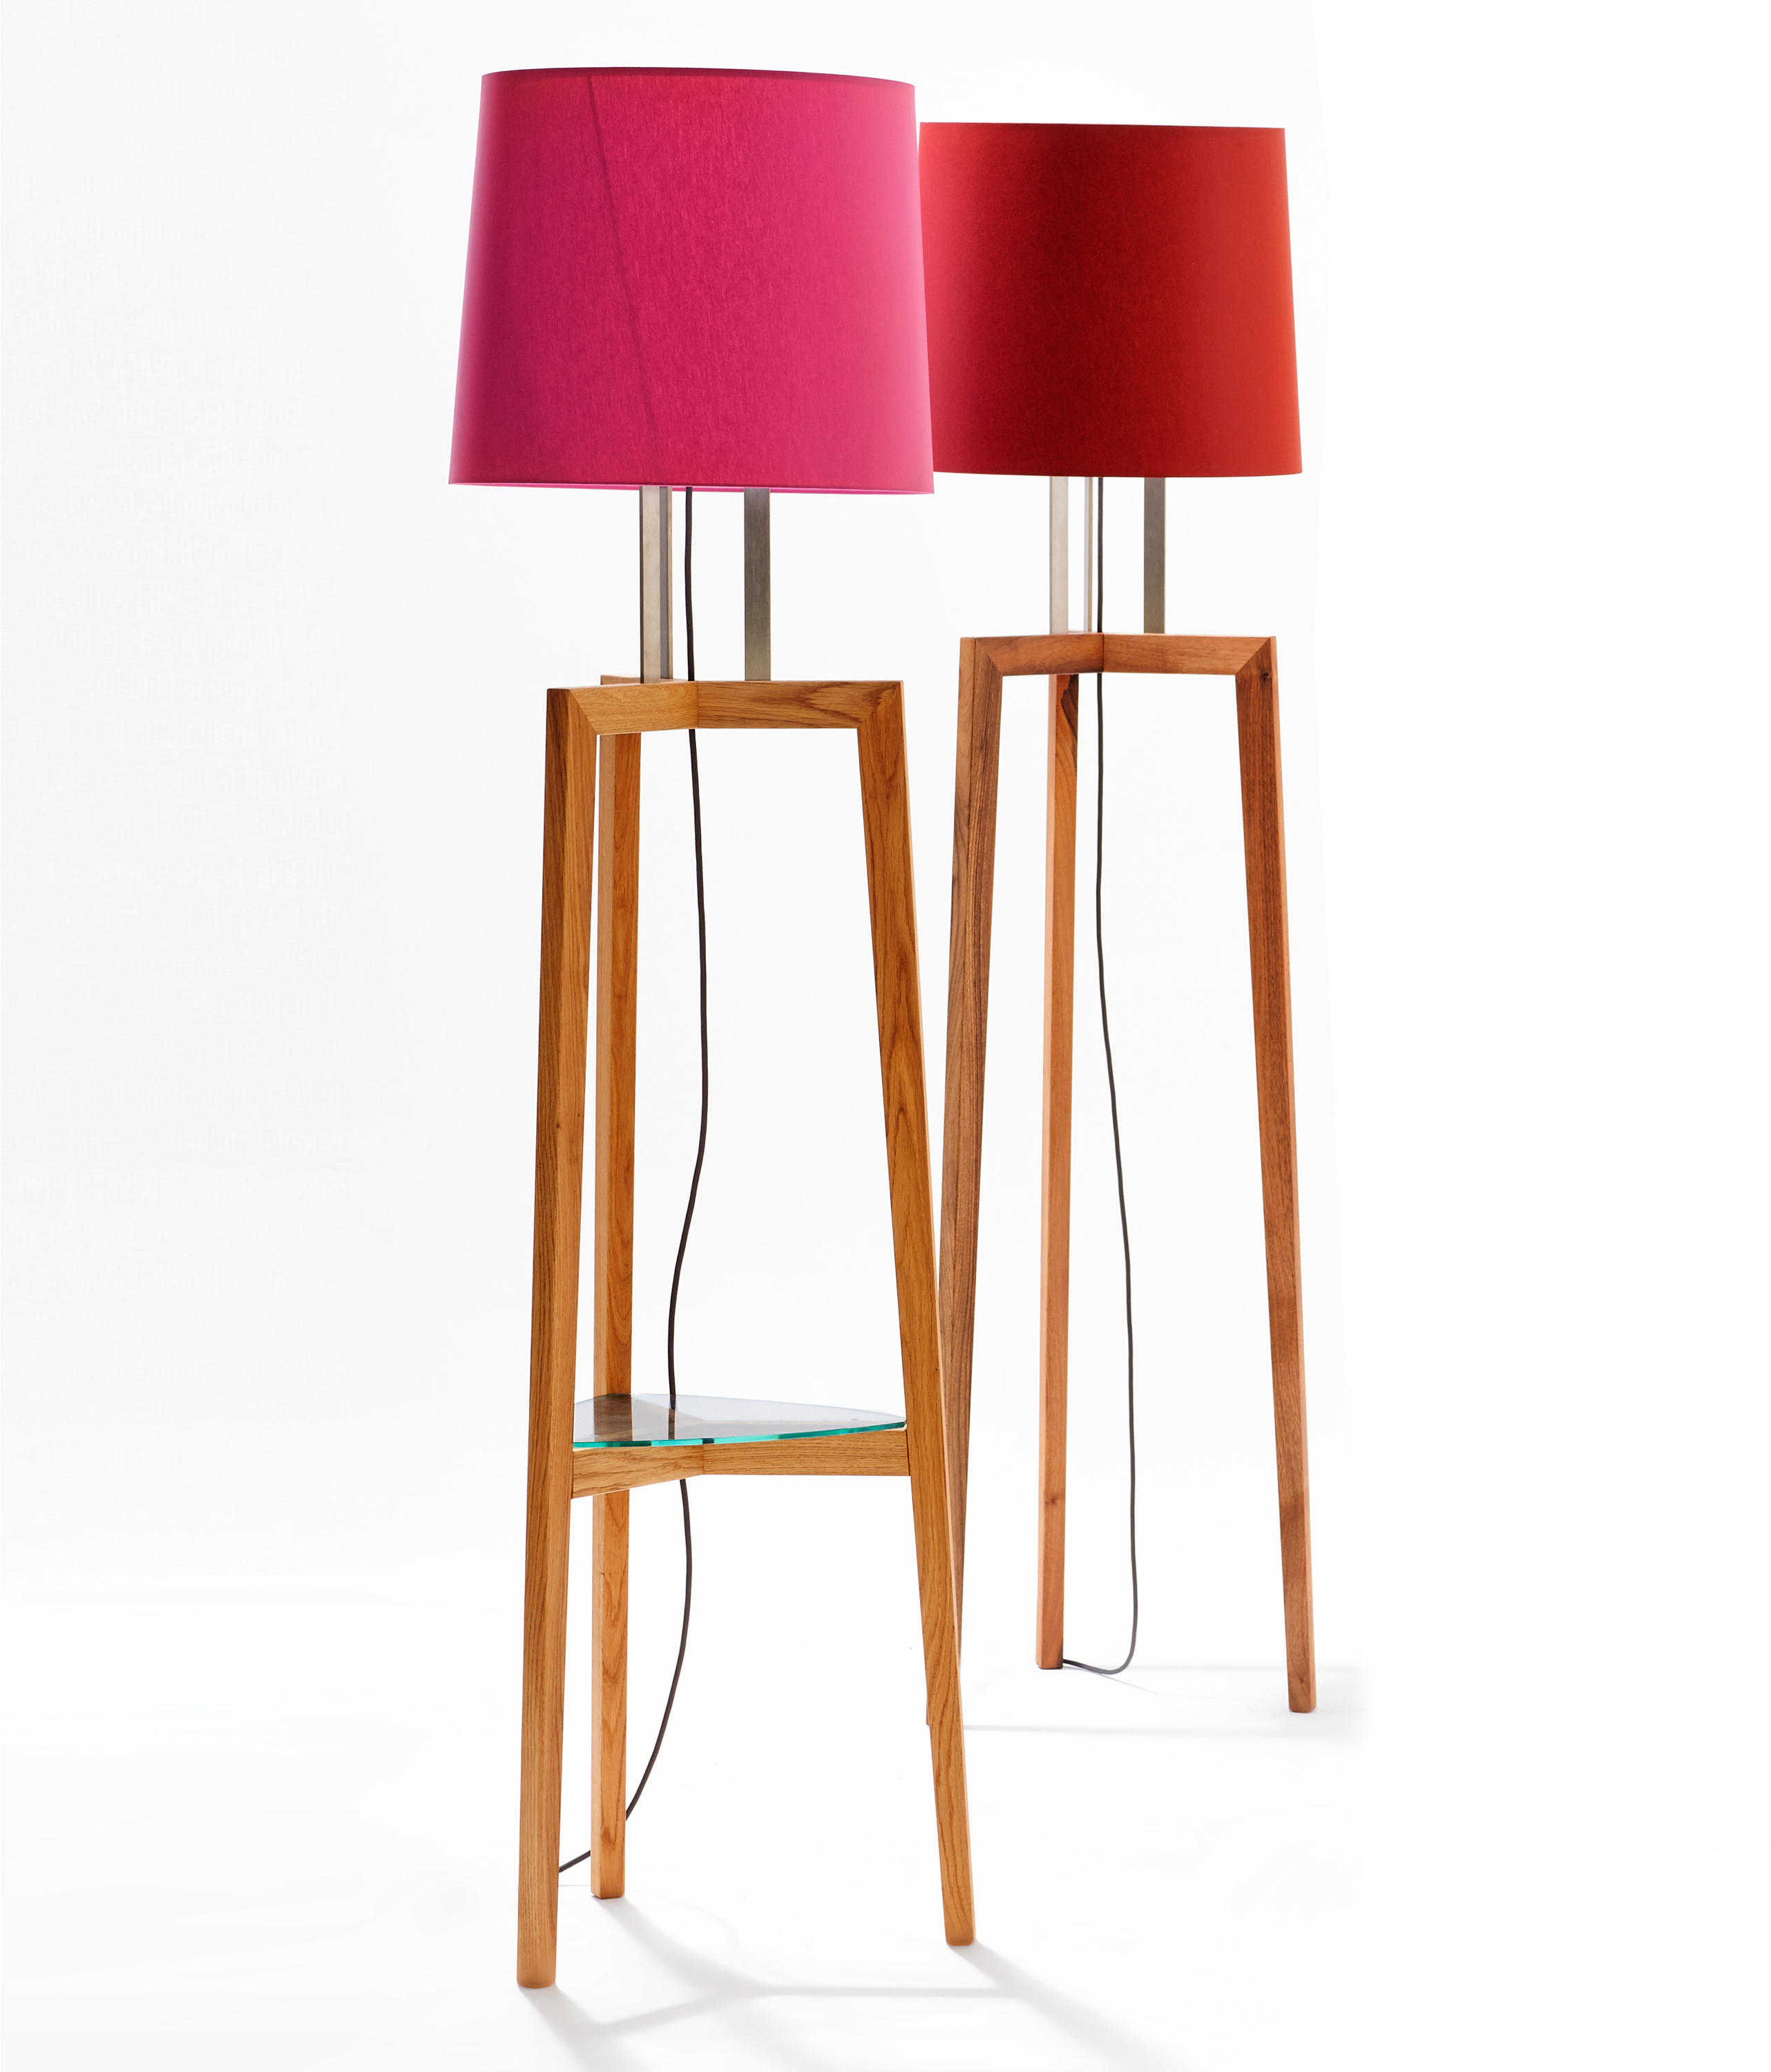 Grace Plus Standing Lamp General Lighting From Sixay Furniture Architonic